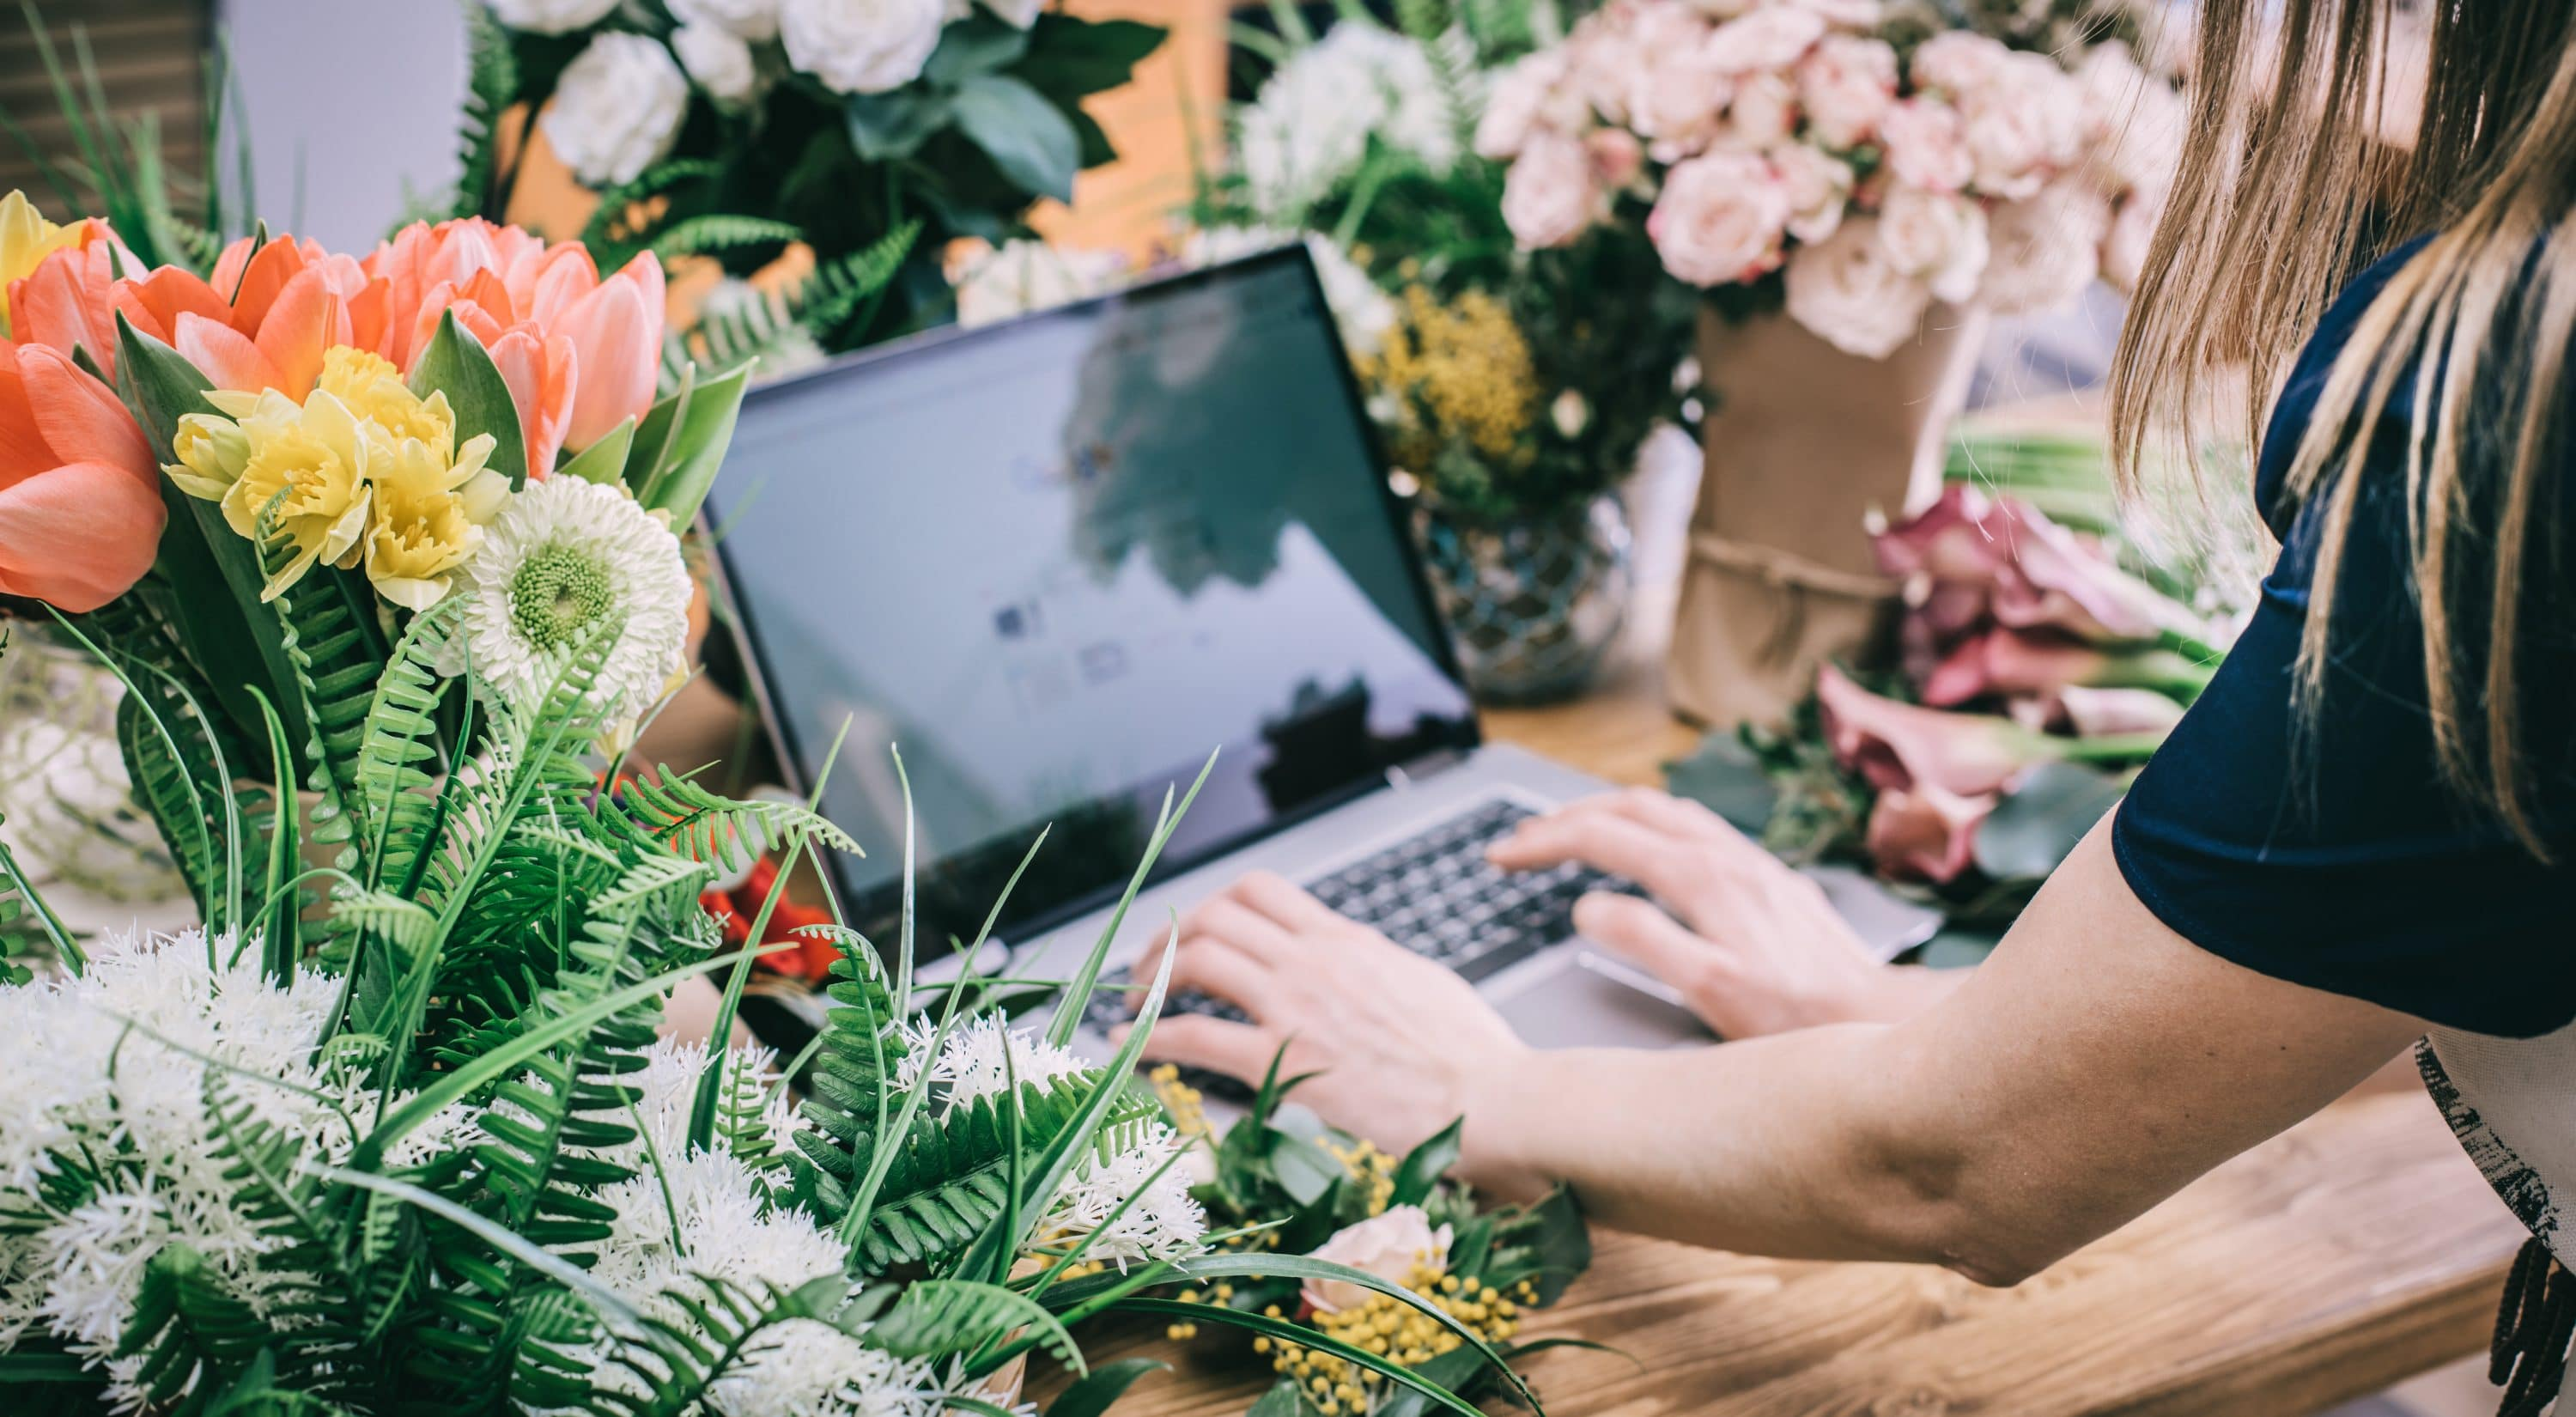 small local florist updates her website on laptop surrounded by flowers